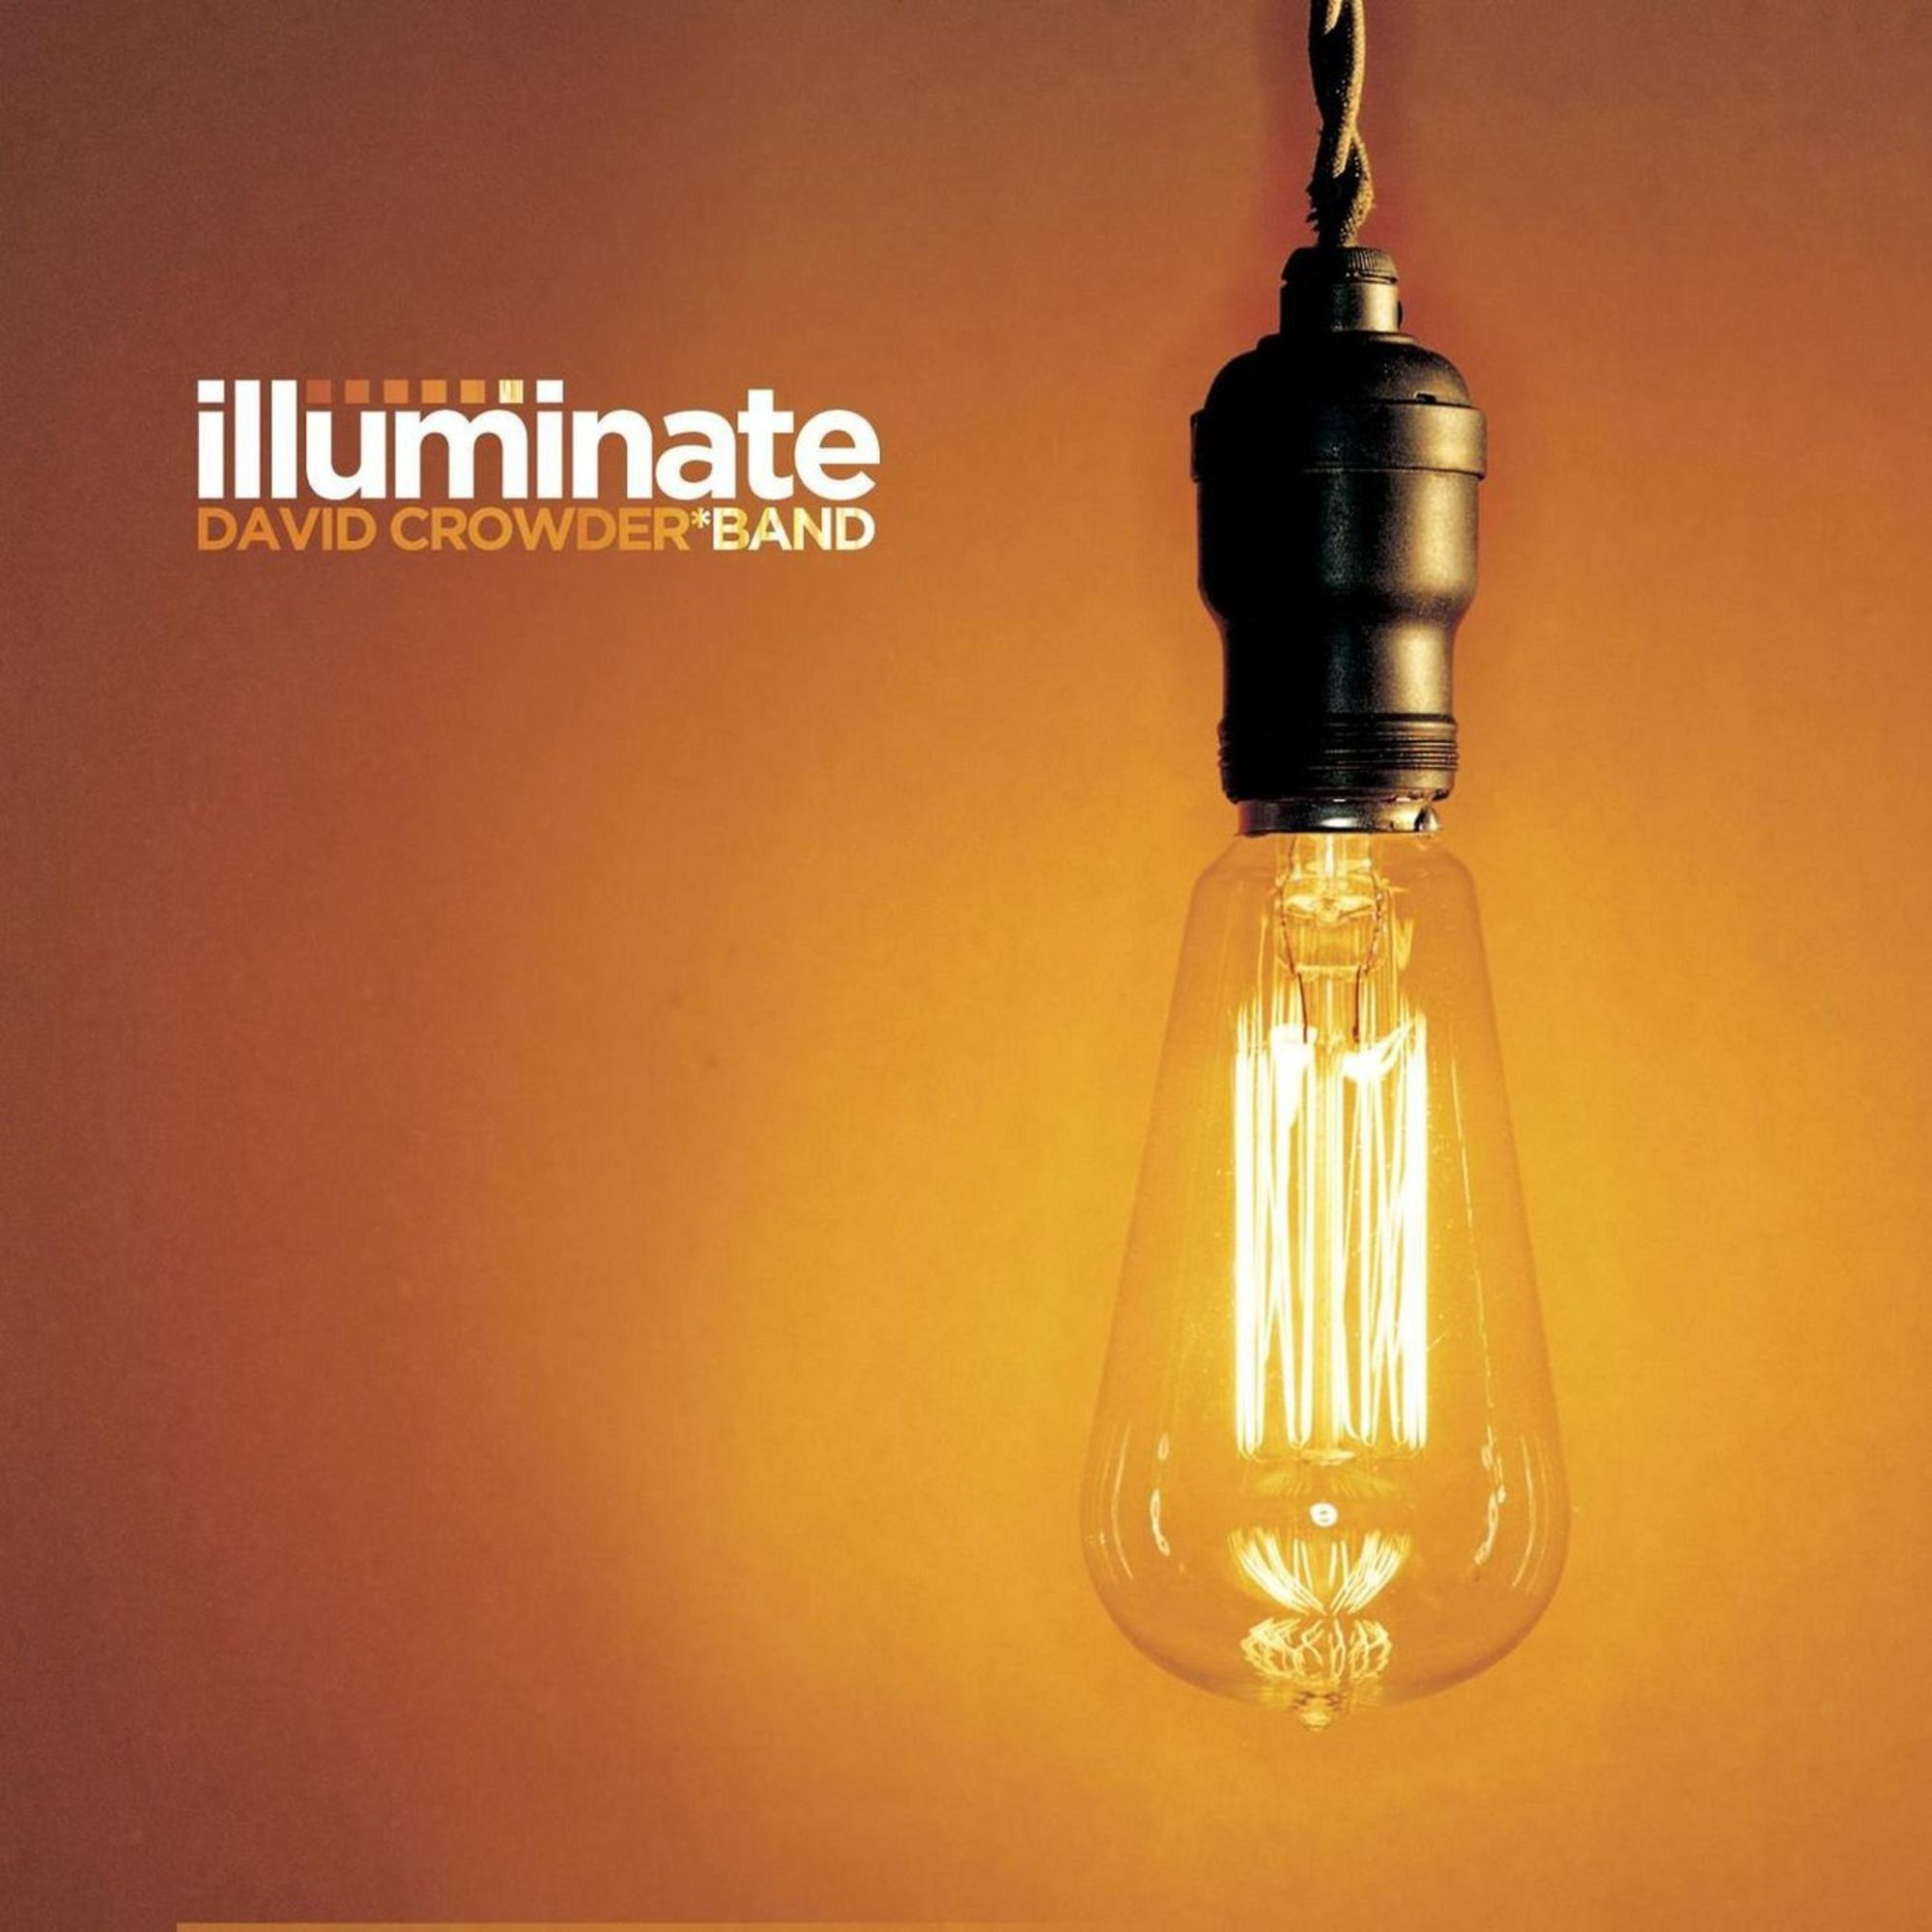 David Crowder*Band - Illuminate album cover